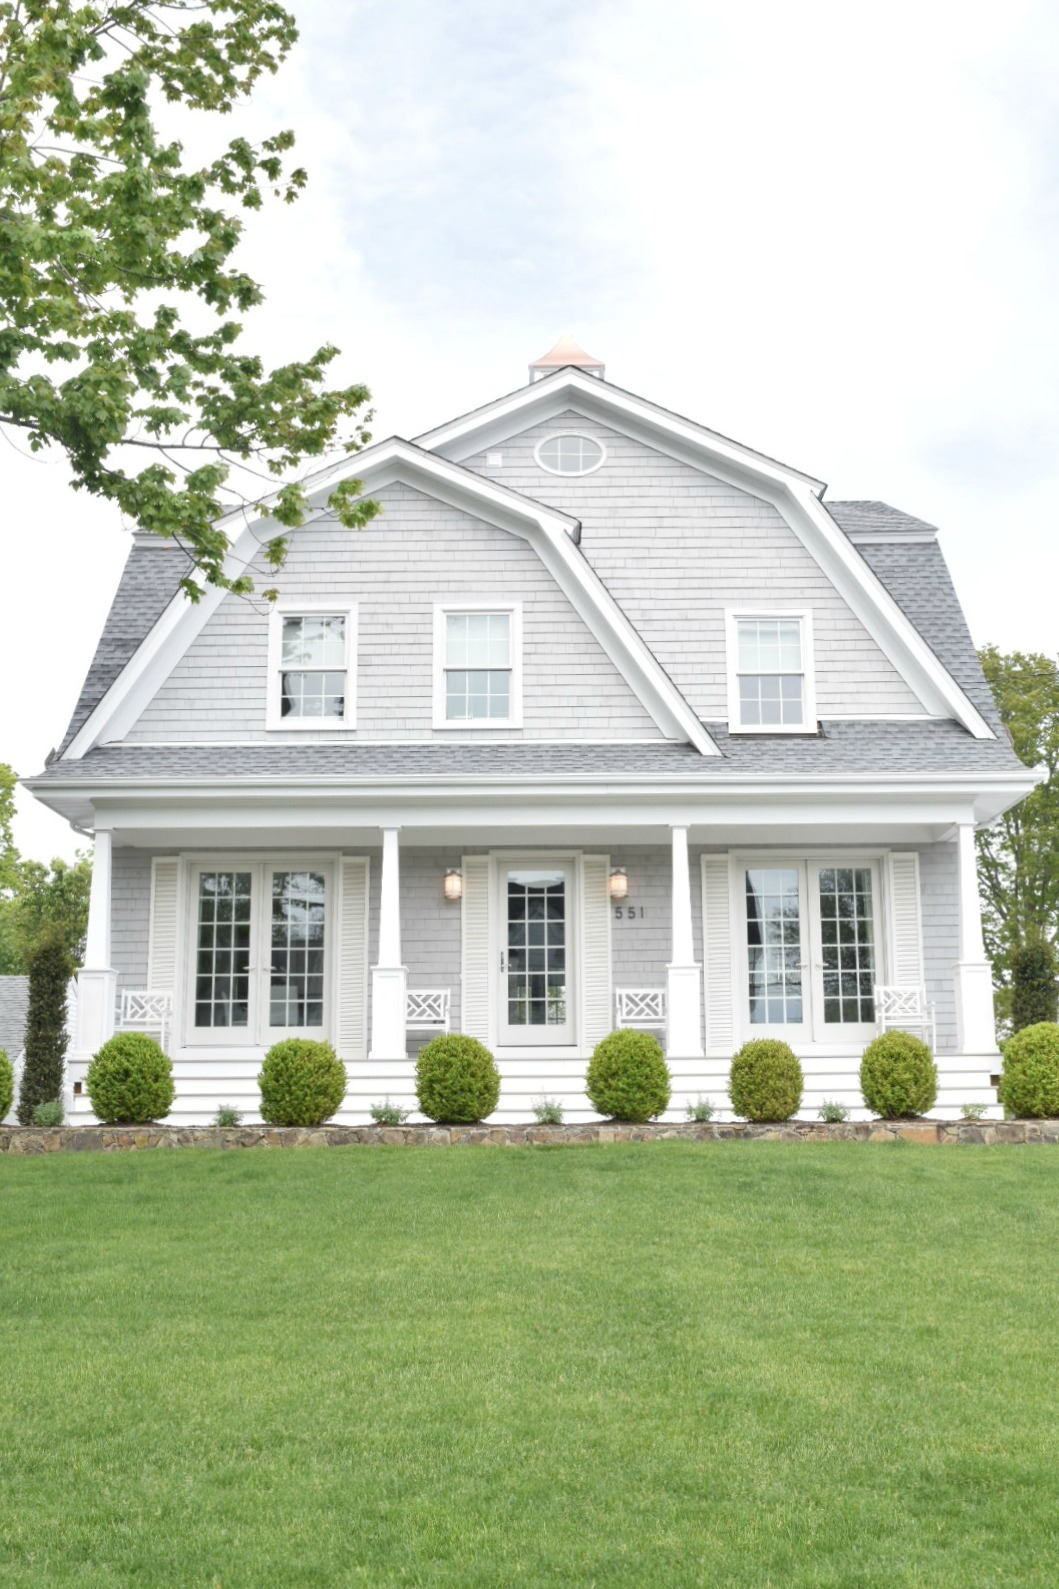 New england homes exterior paint color ideas nesting - House paint colors exterior photos ...